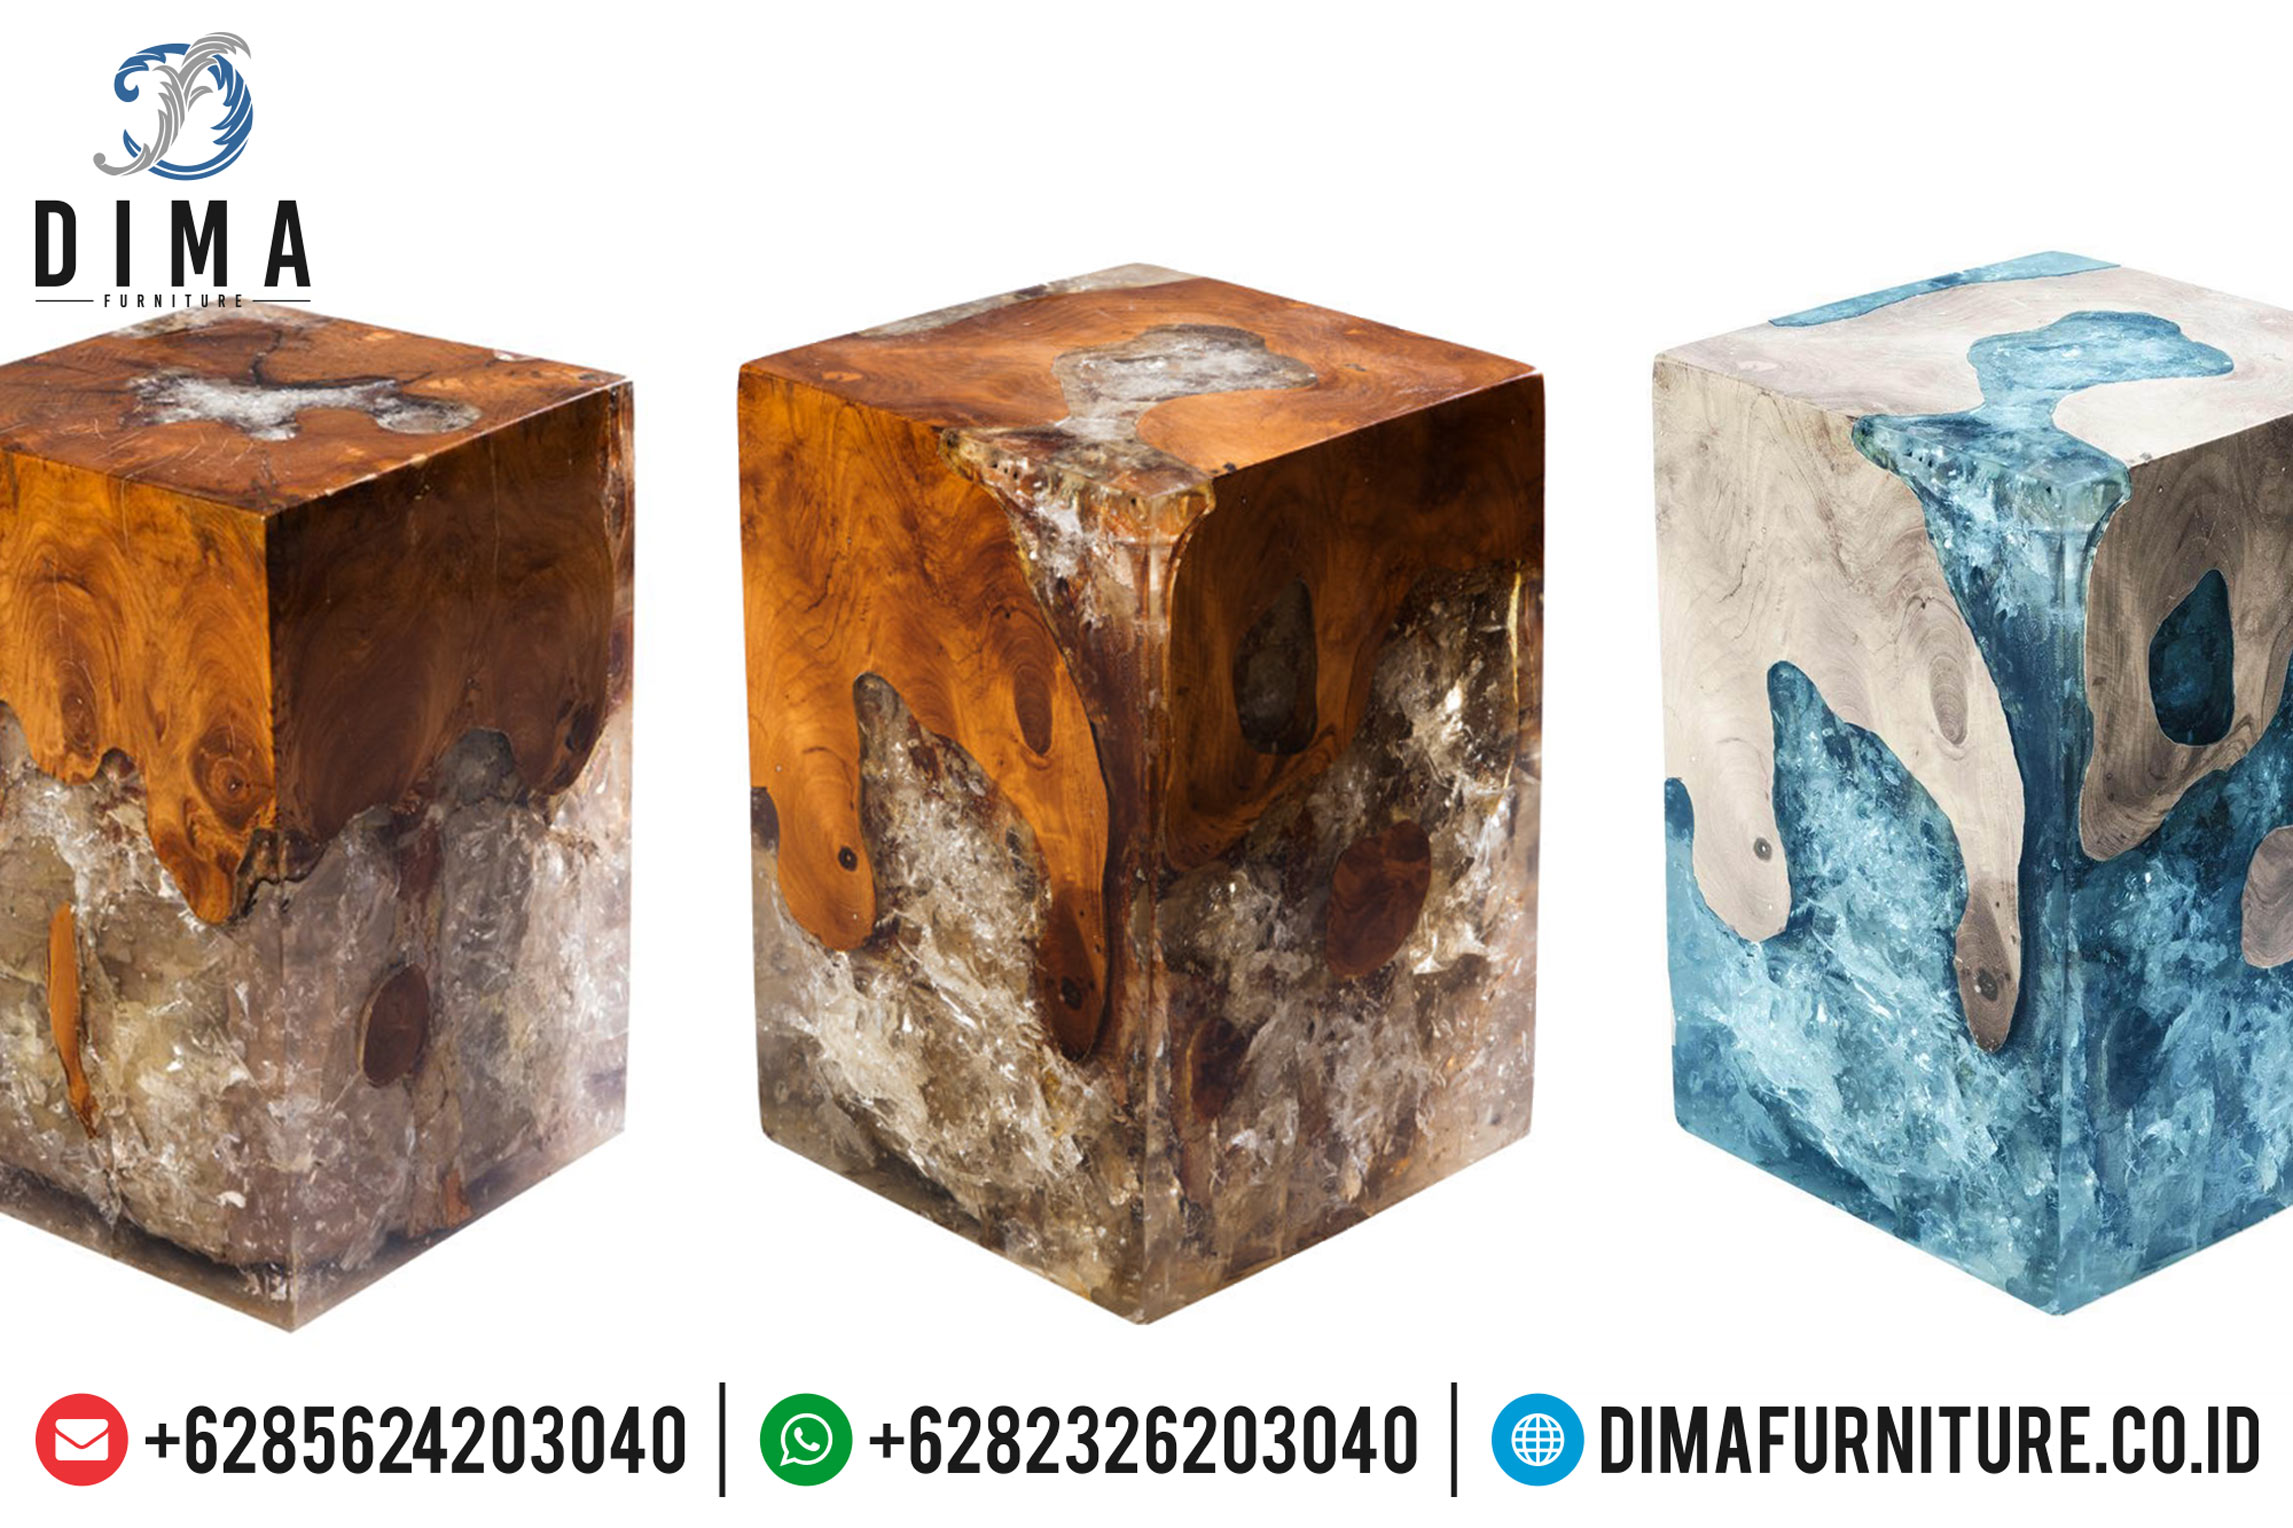 Resin Furniture Indonesia, Meja Resin Minimalis, Stool Kayu Resin Murah MM-0380